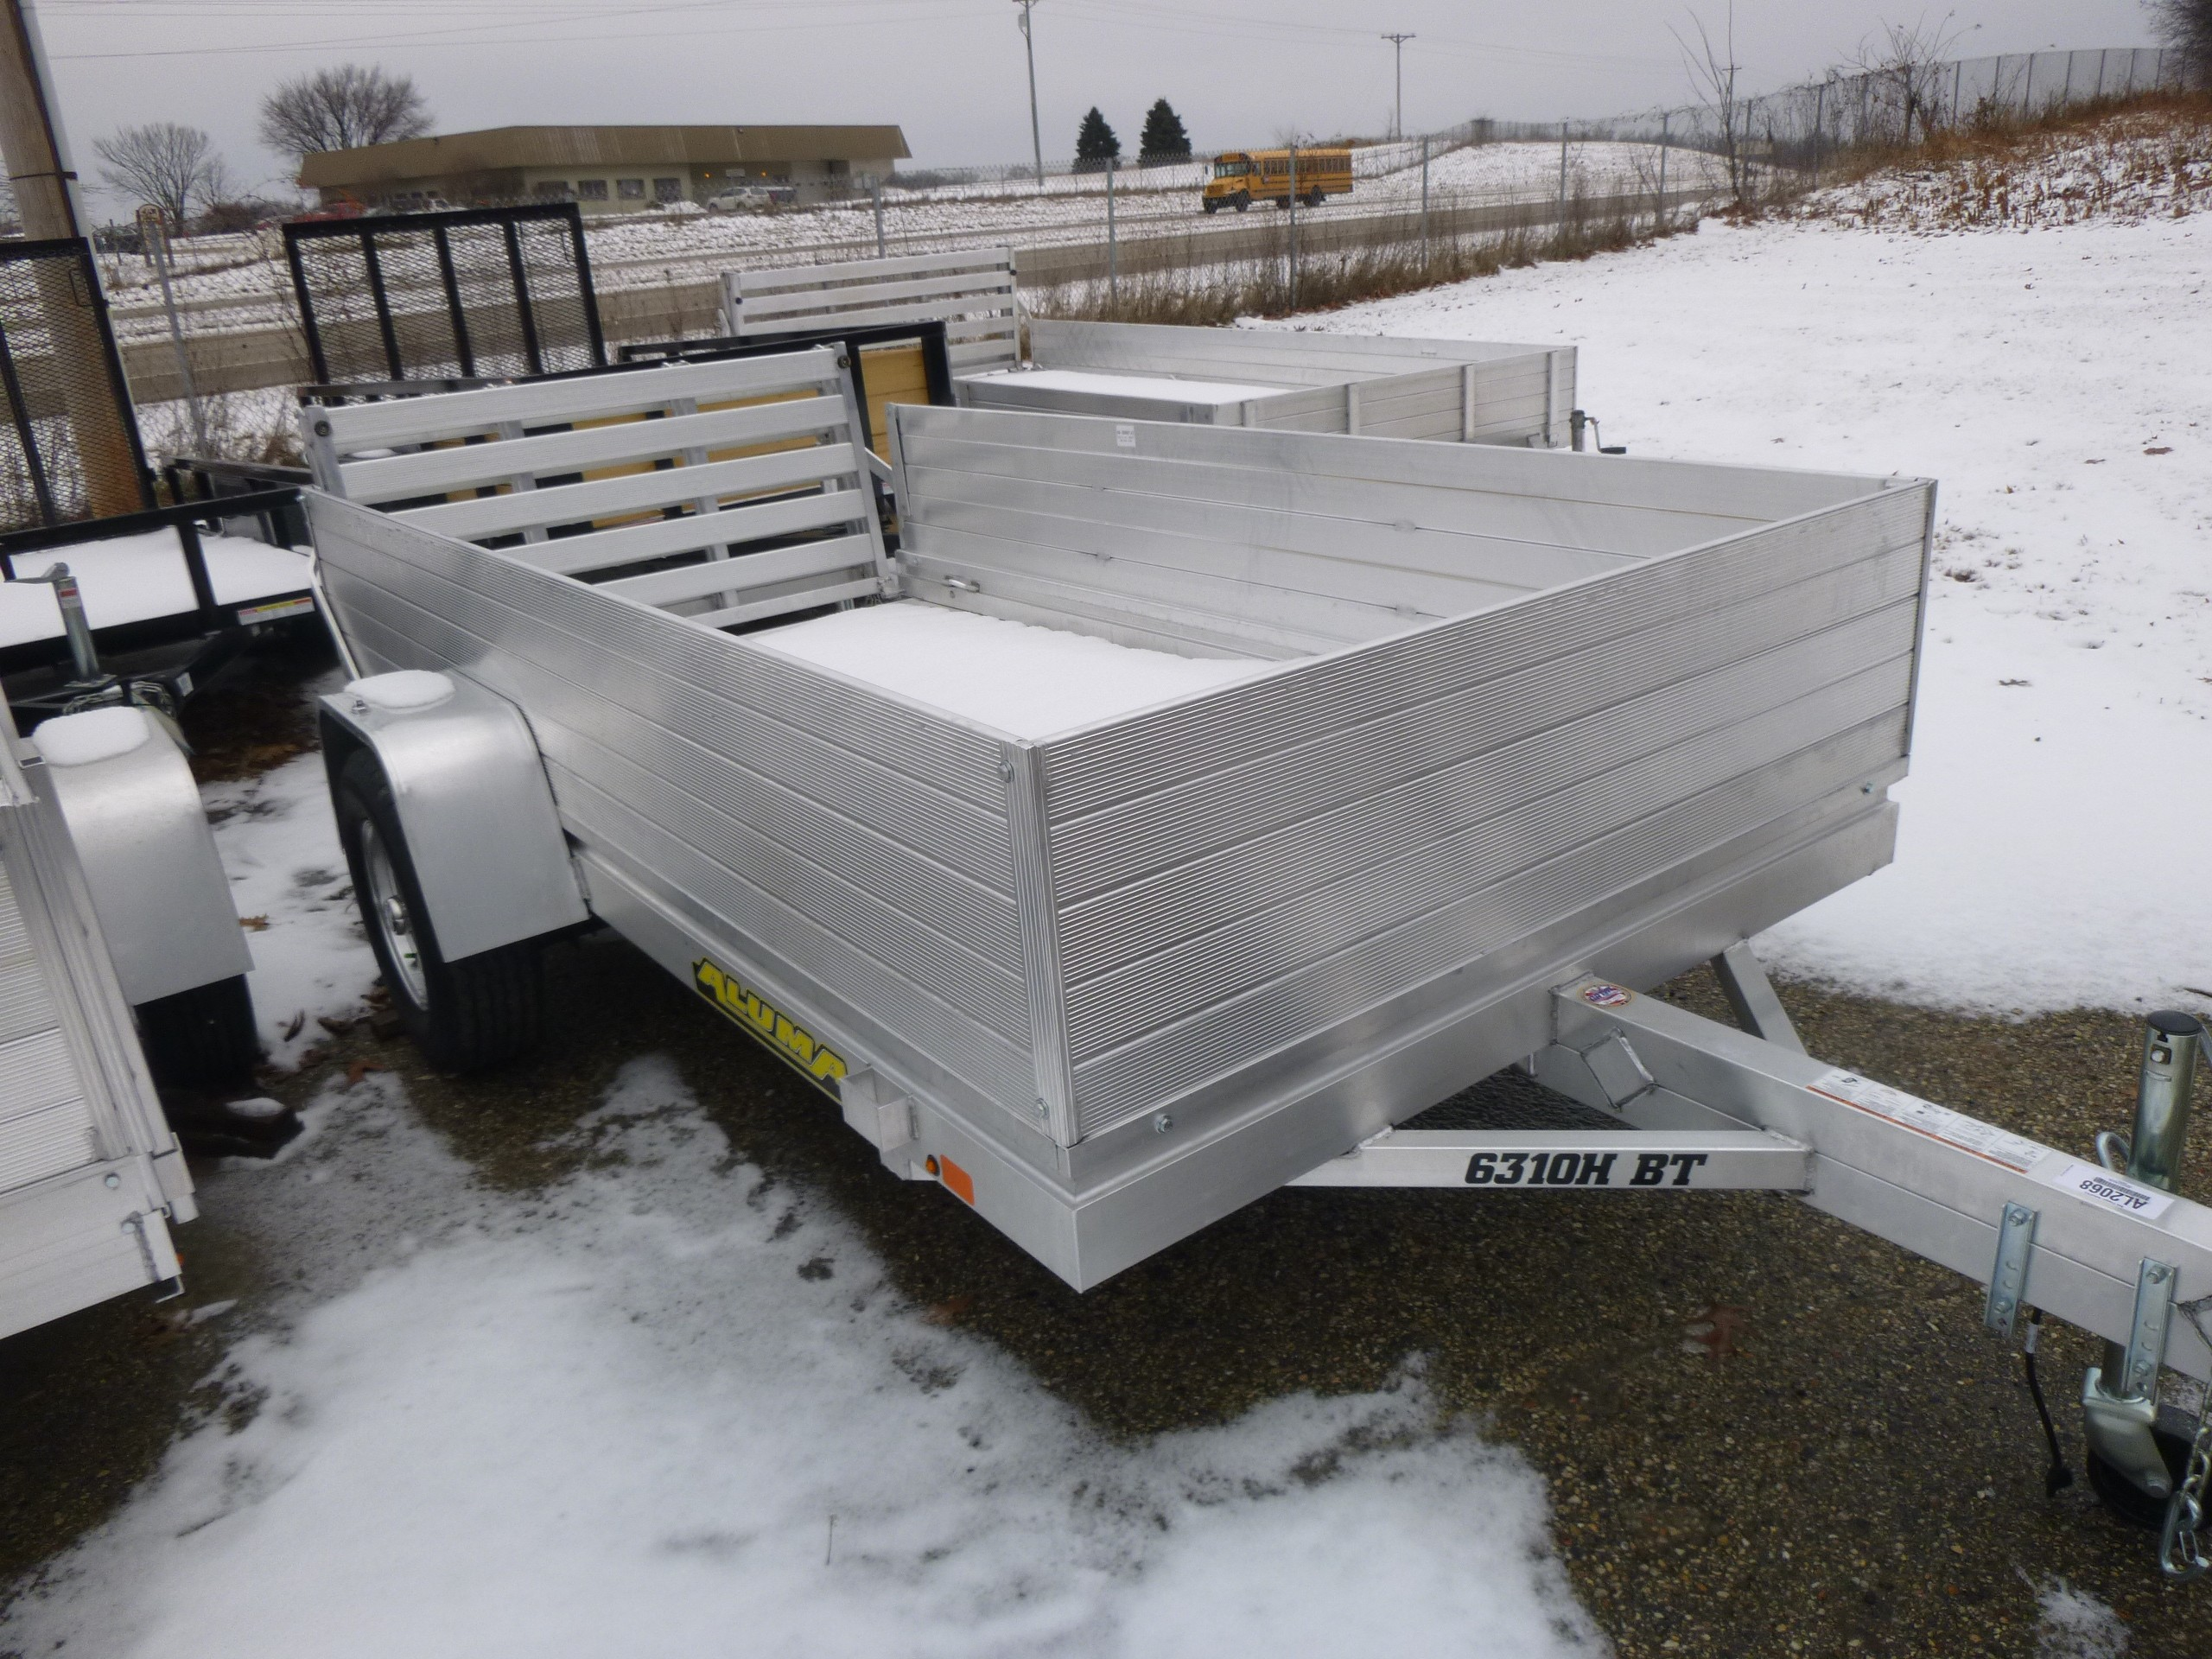 New, 2020, Aluma, 6310HBT, Trailers